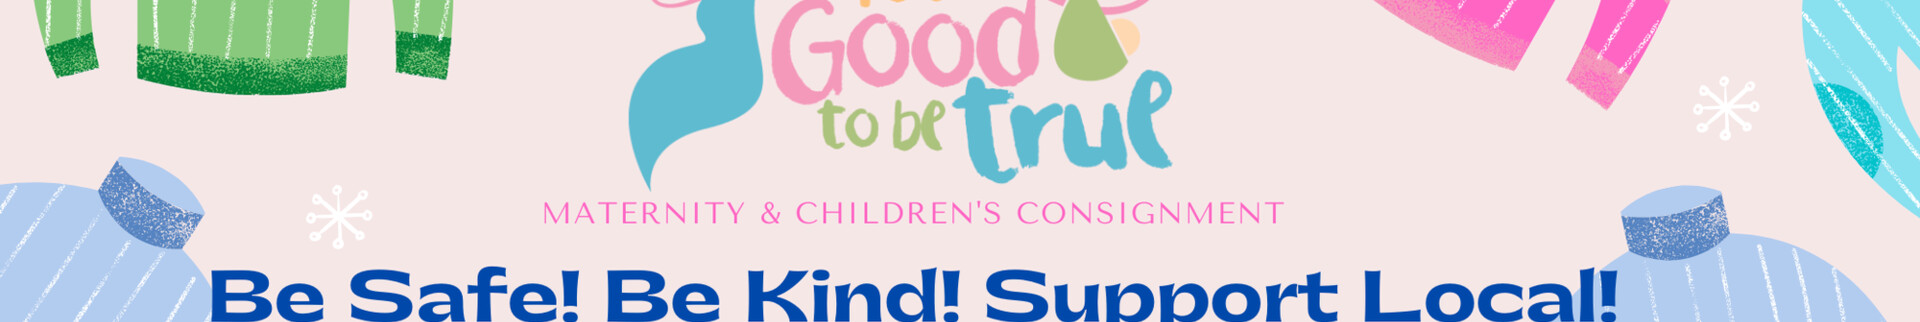 Too Good To Be True Consignment's banner image.